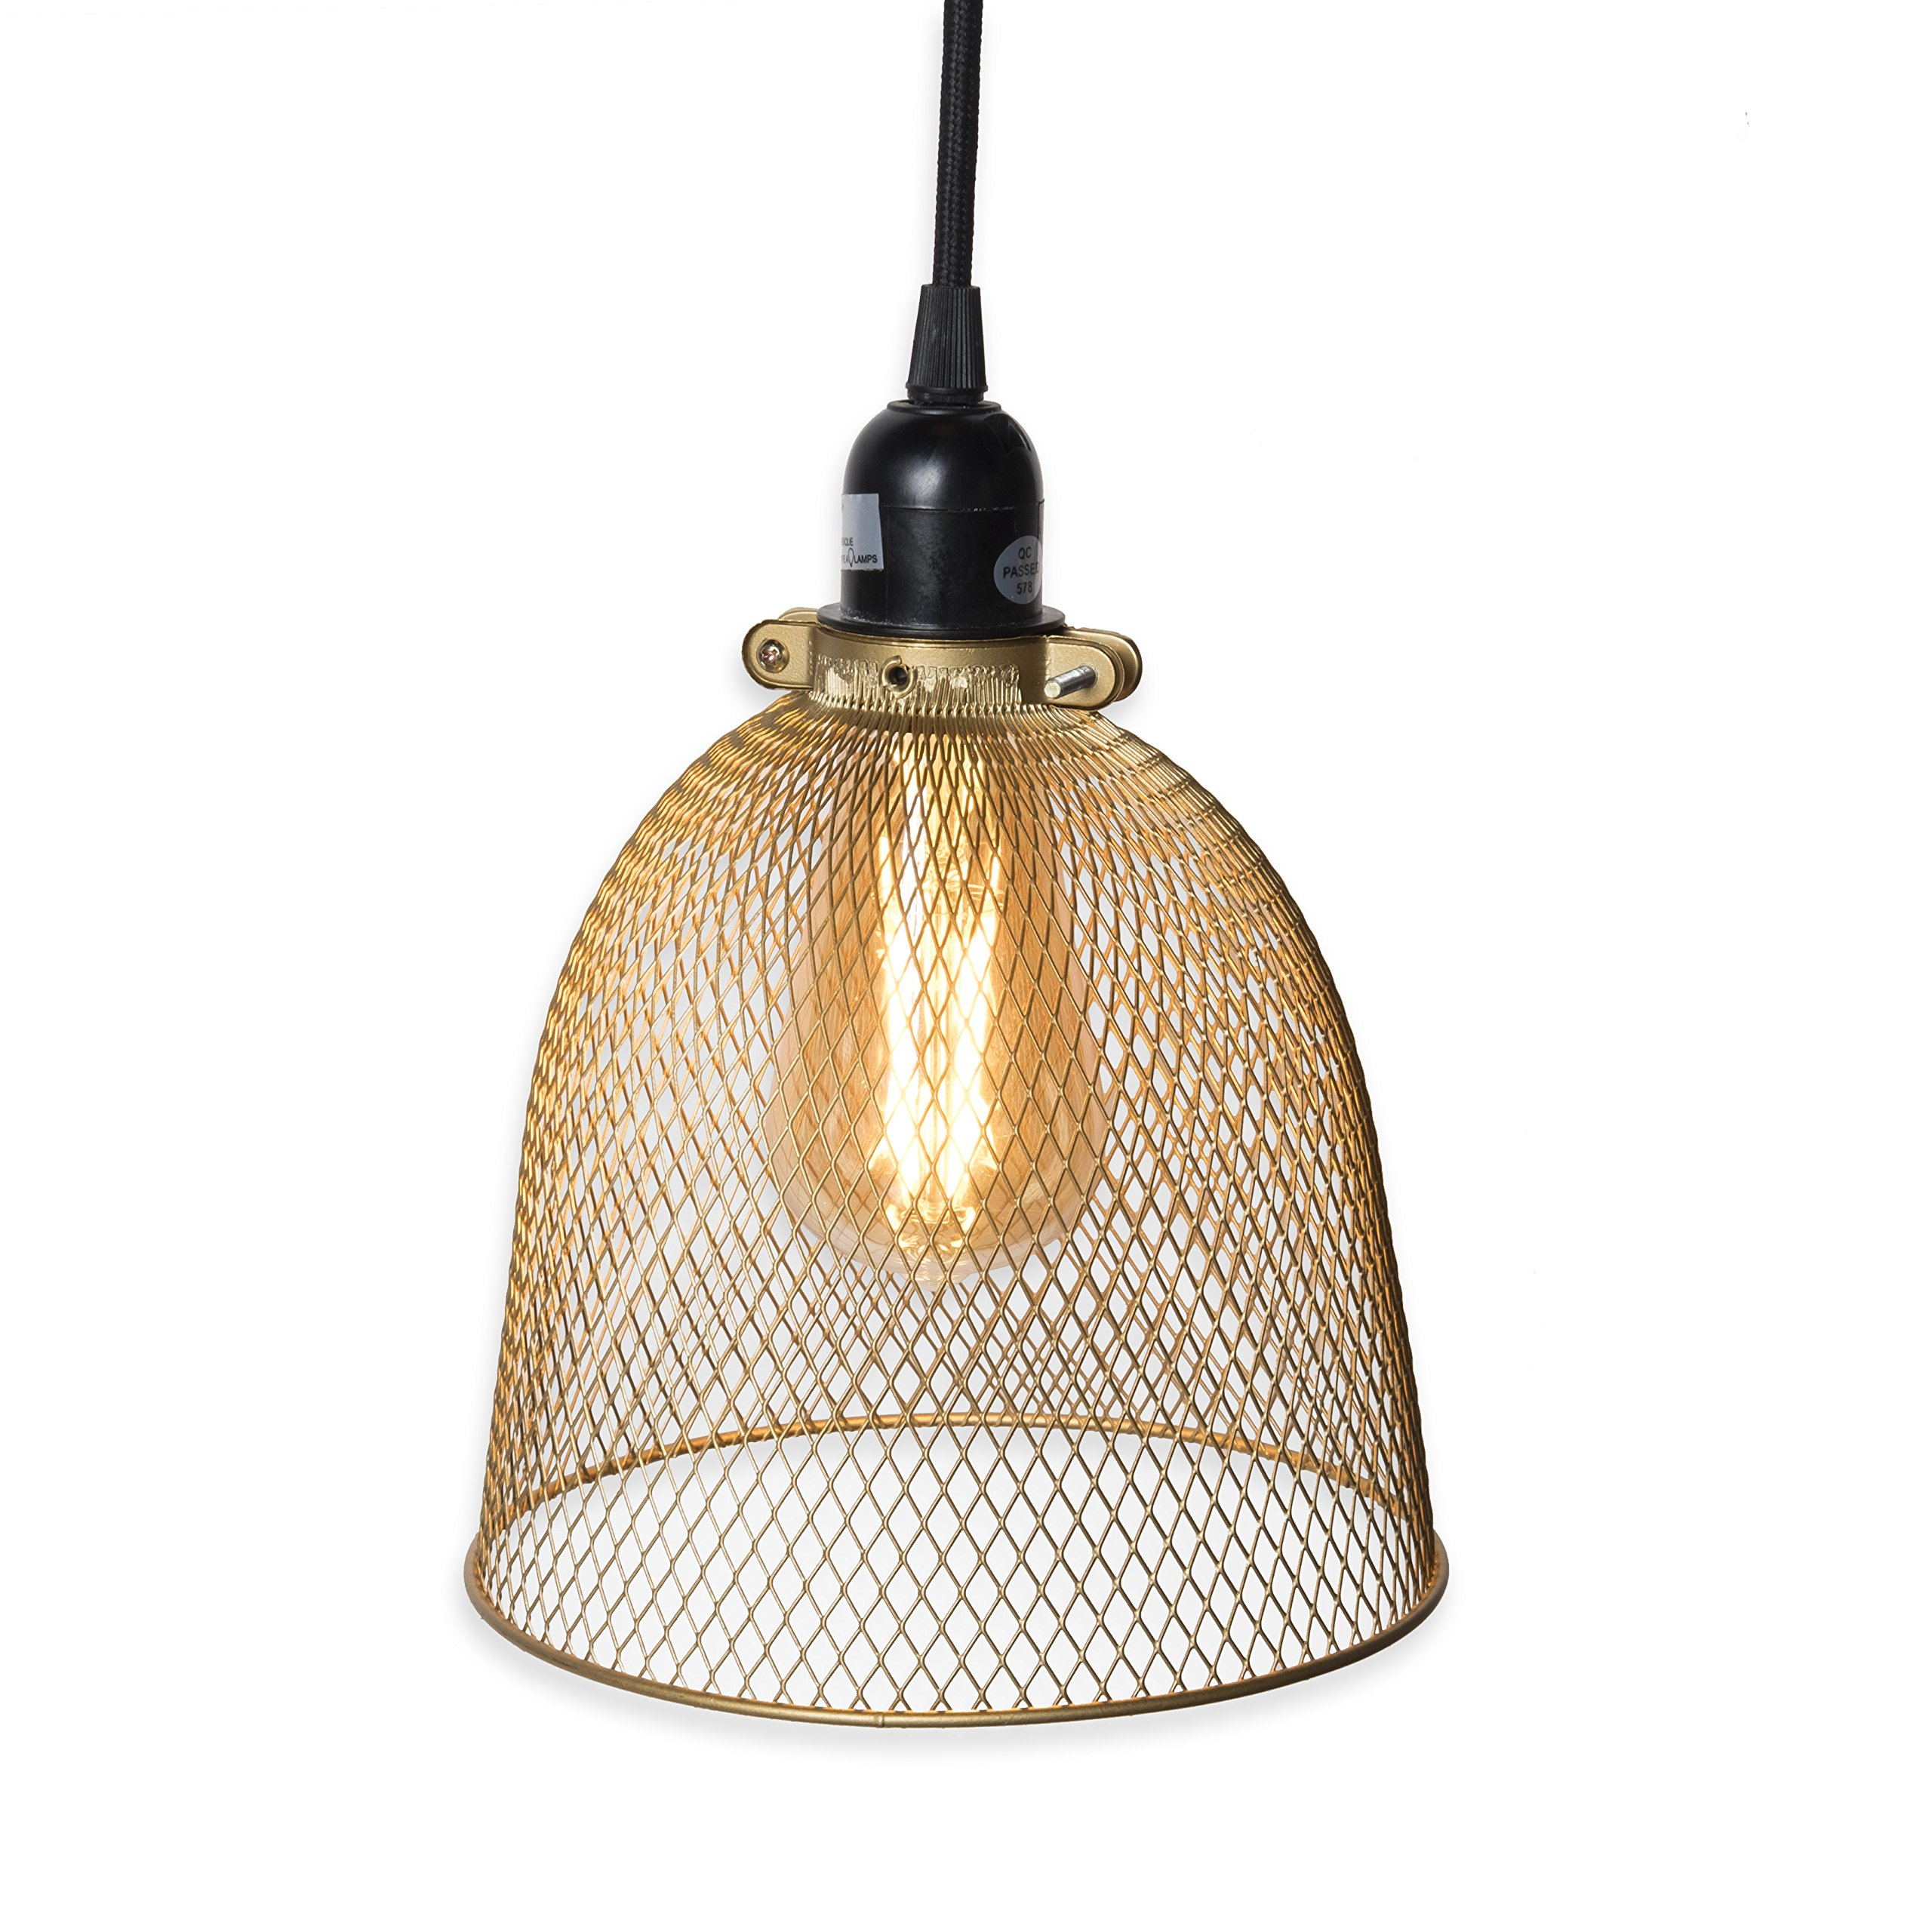 Rustic State Industrial Retro Style Mesh Wire Gold Cage Pendant Ceiling Lamp by Rustic State with 30-Watt Dimmable Edison LED Bulb and 15 Feet Toggle Switch Black Fabric Cord